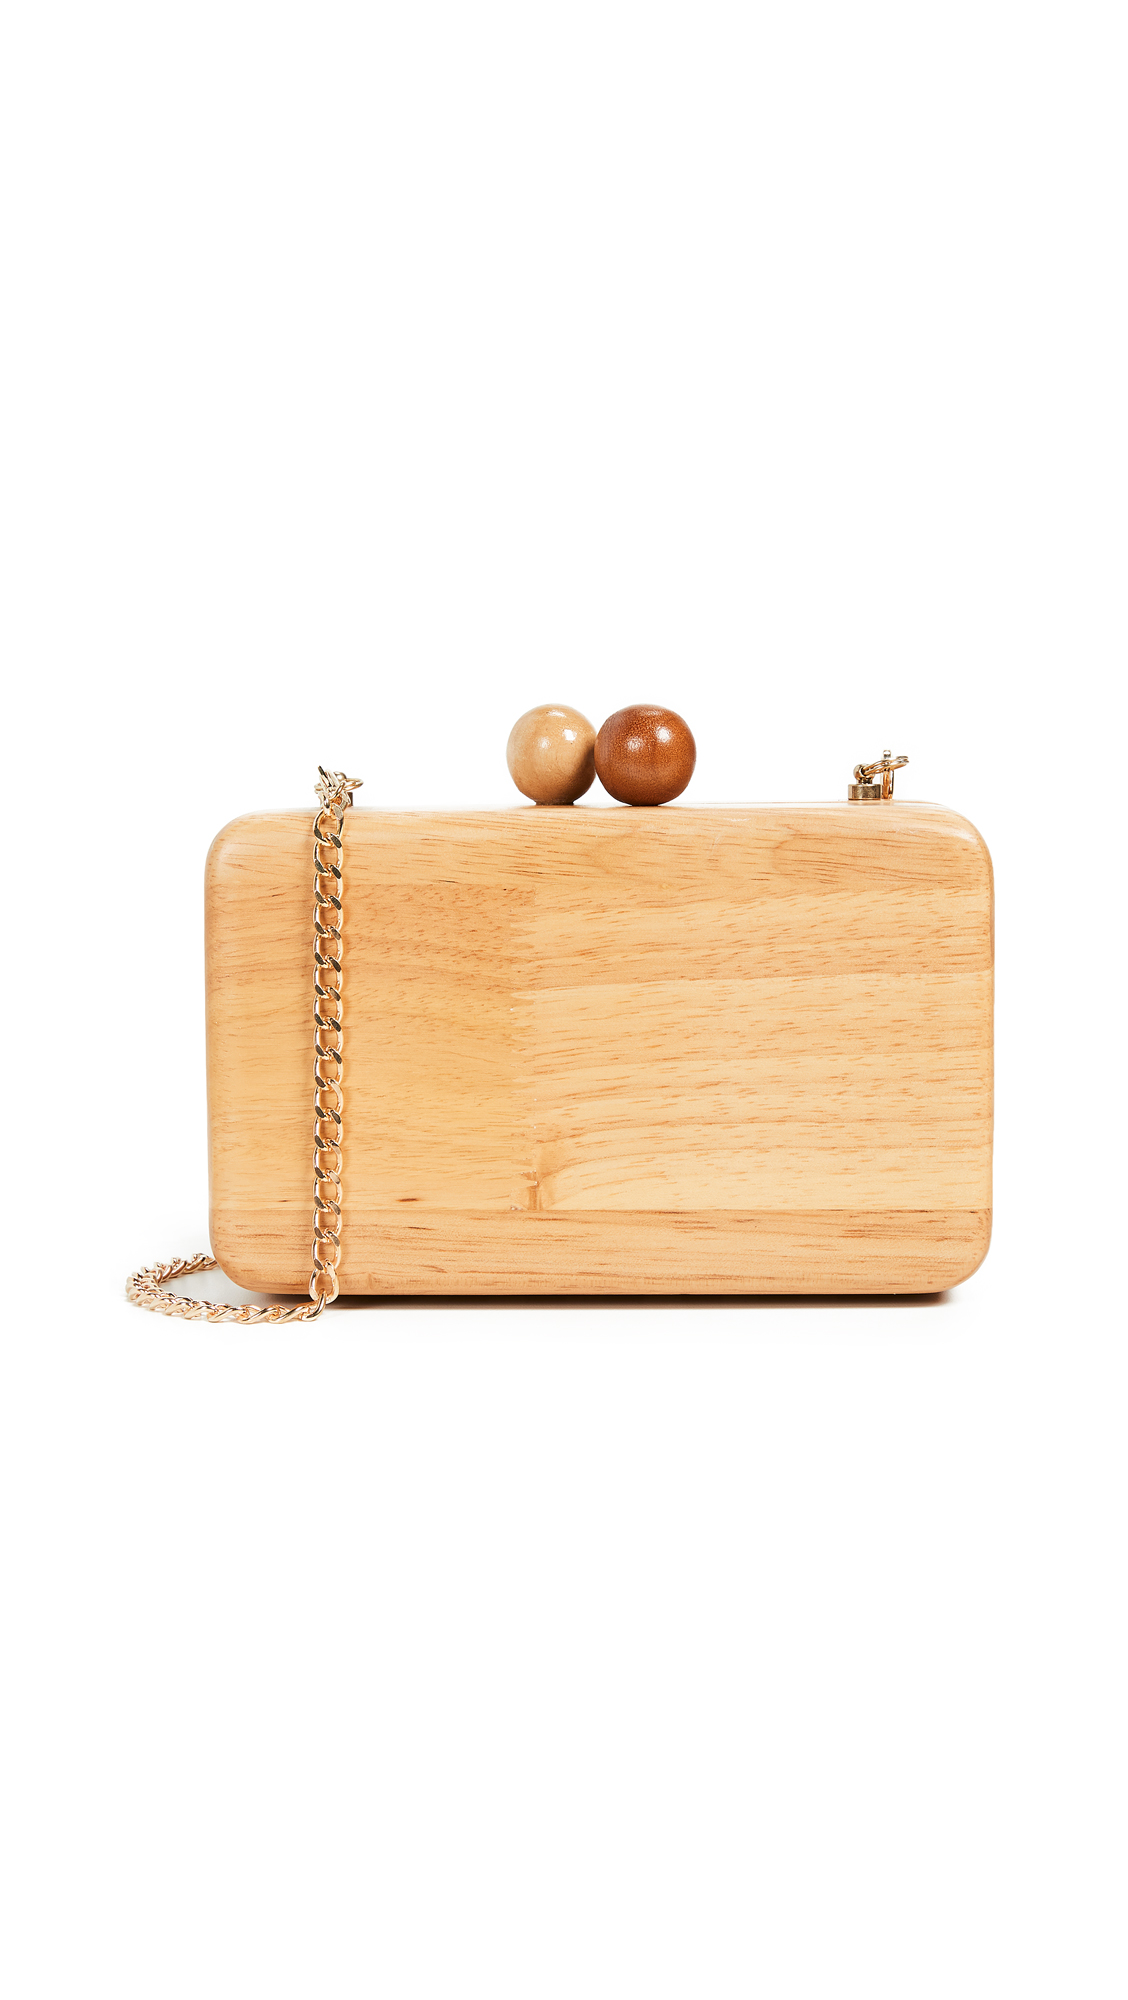 Inge Christopher Ornella Square Wood Clutch In Natural